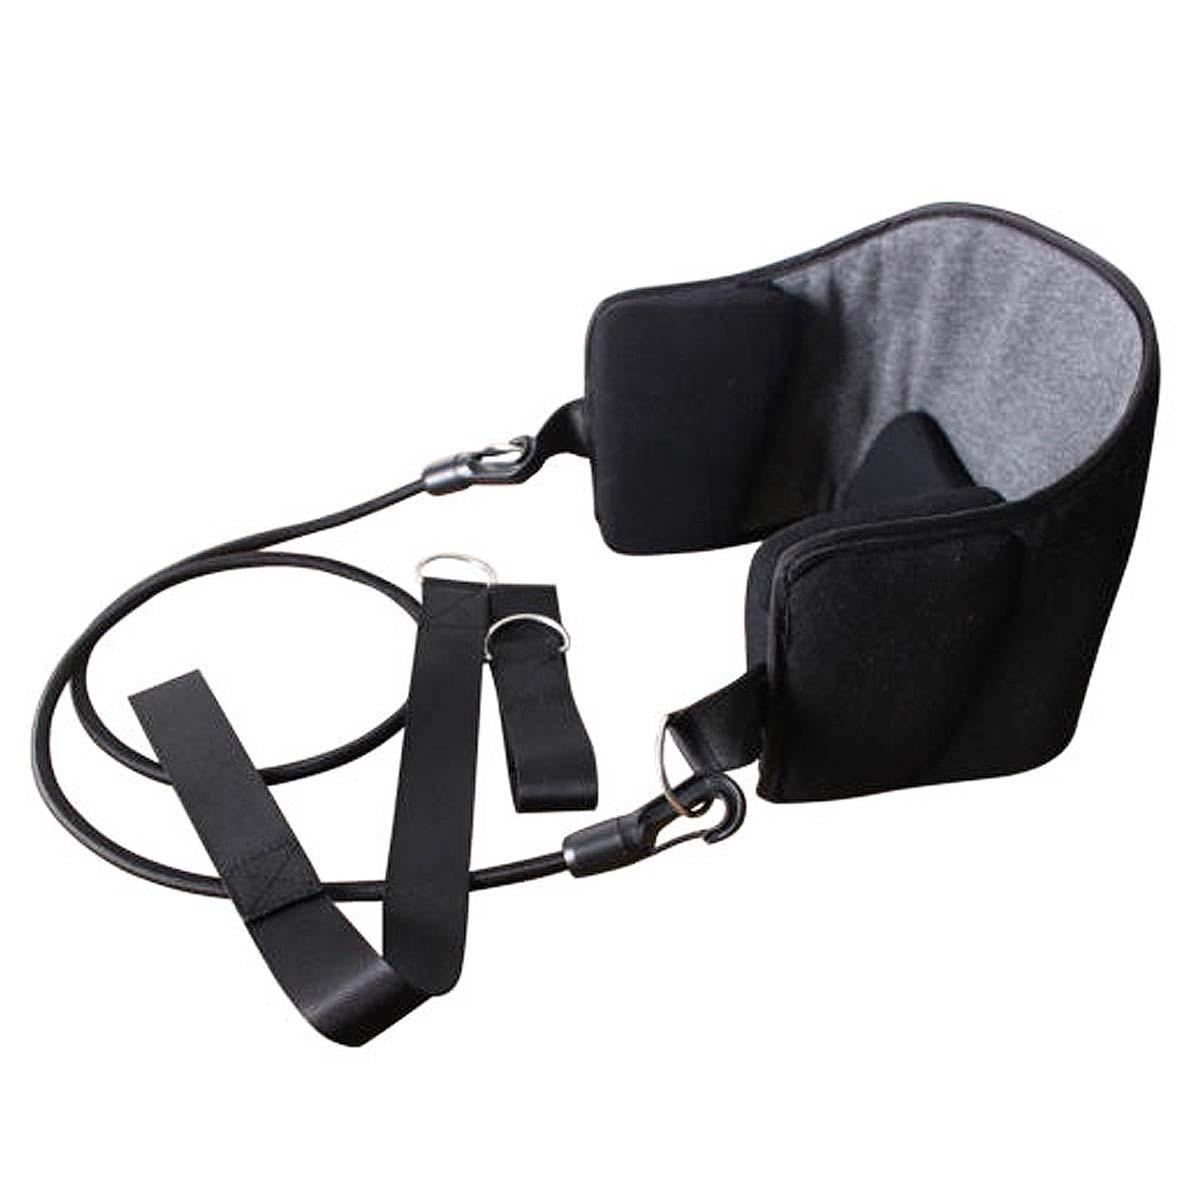 Neck Traction Hammock For Head And Neck Pain Relief Relaxation Blood Circulation